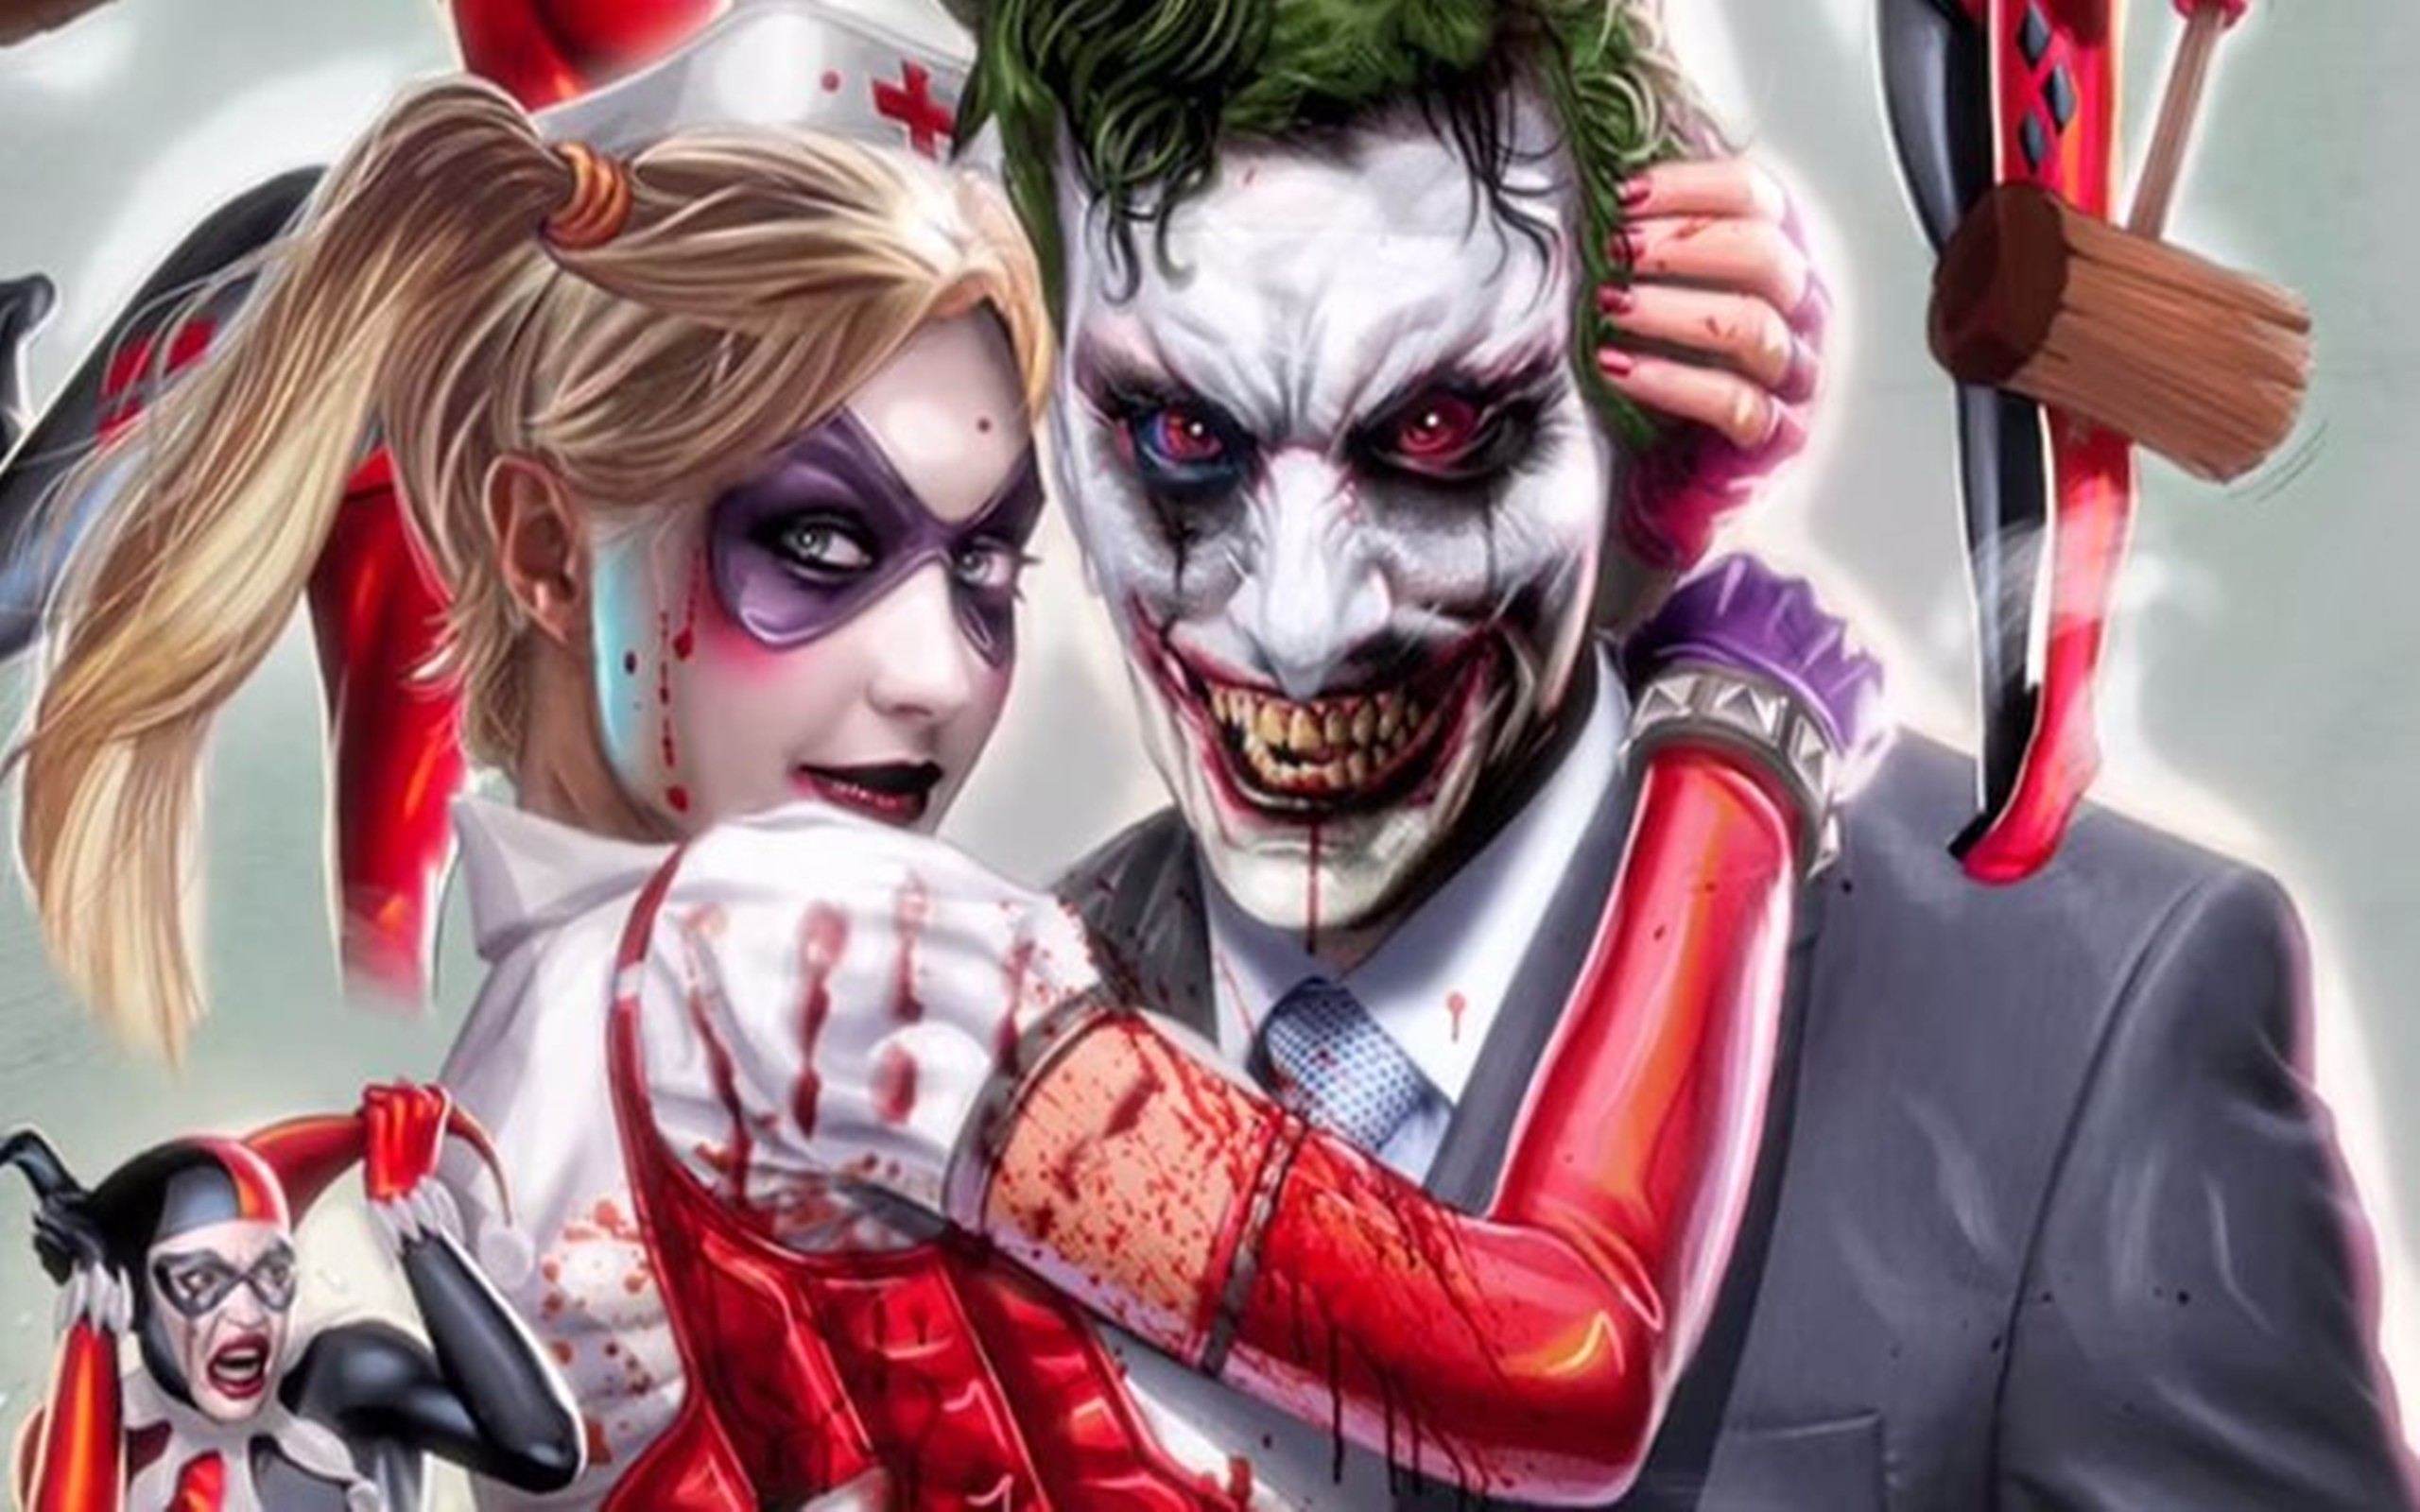 Harley quinn and joker wallpaper download free for Joker immagini hd